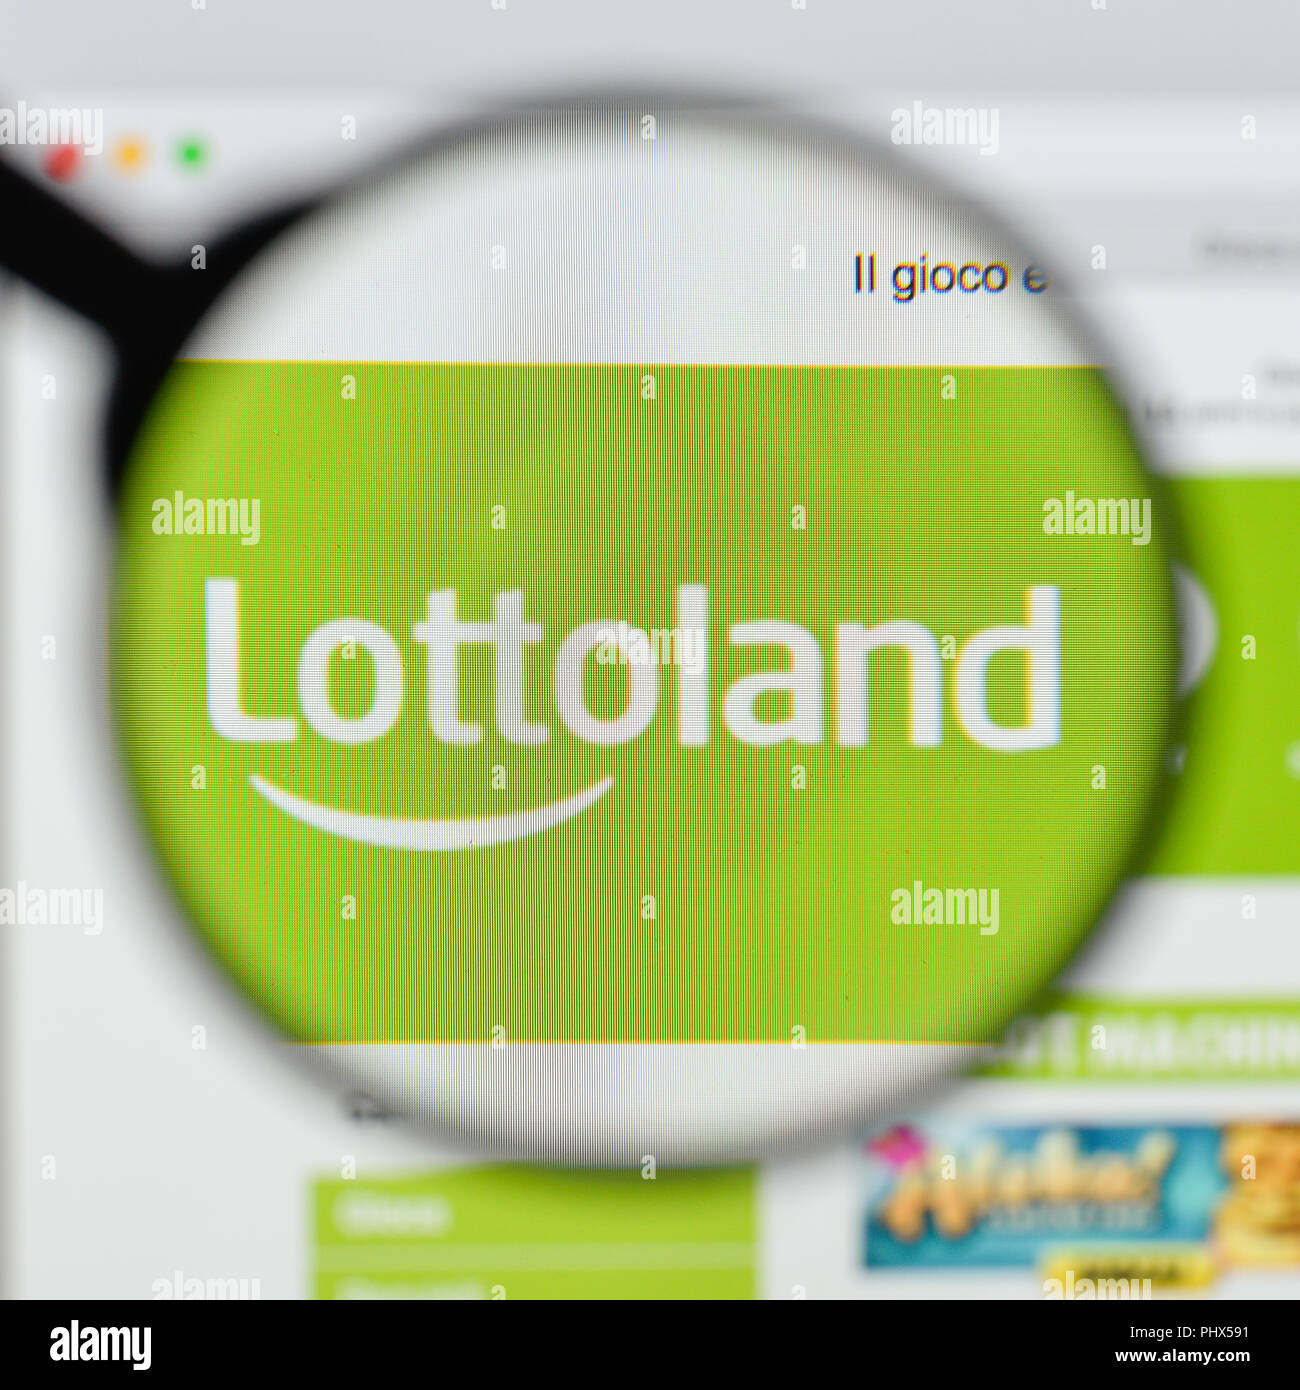 Lottoland Stock Photos & Lottoland Stock Images - Alamy